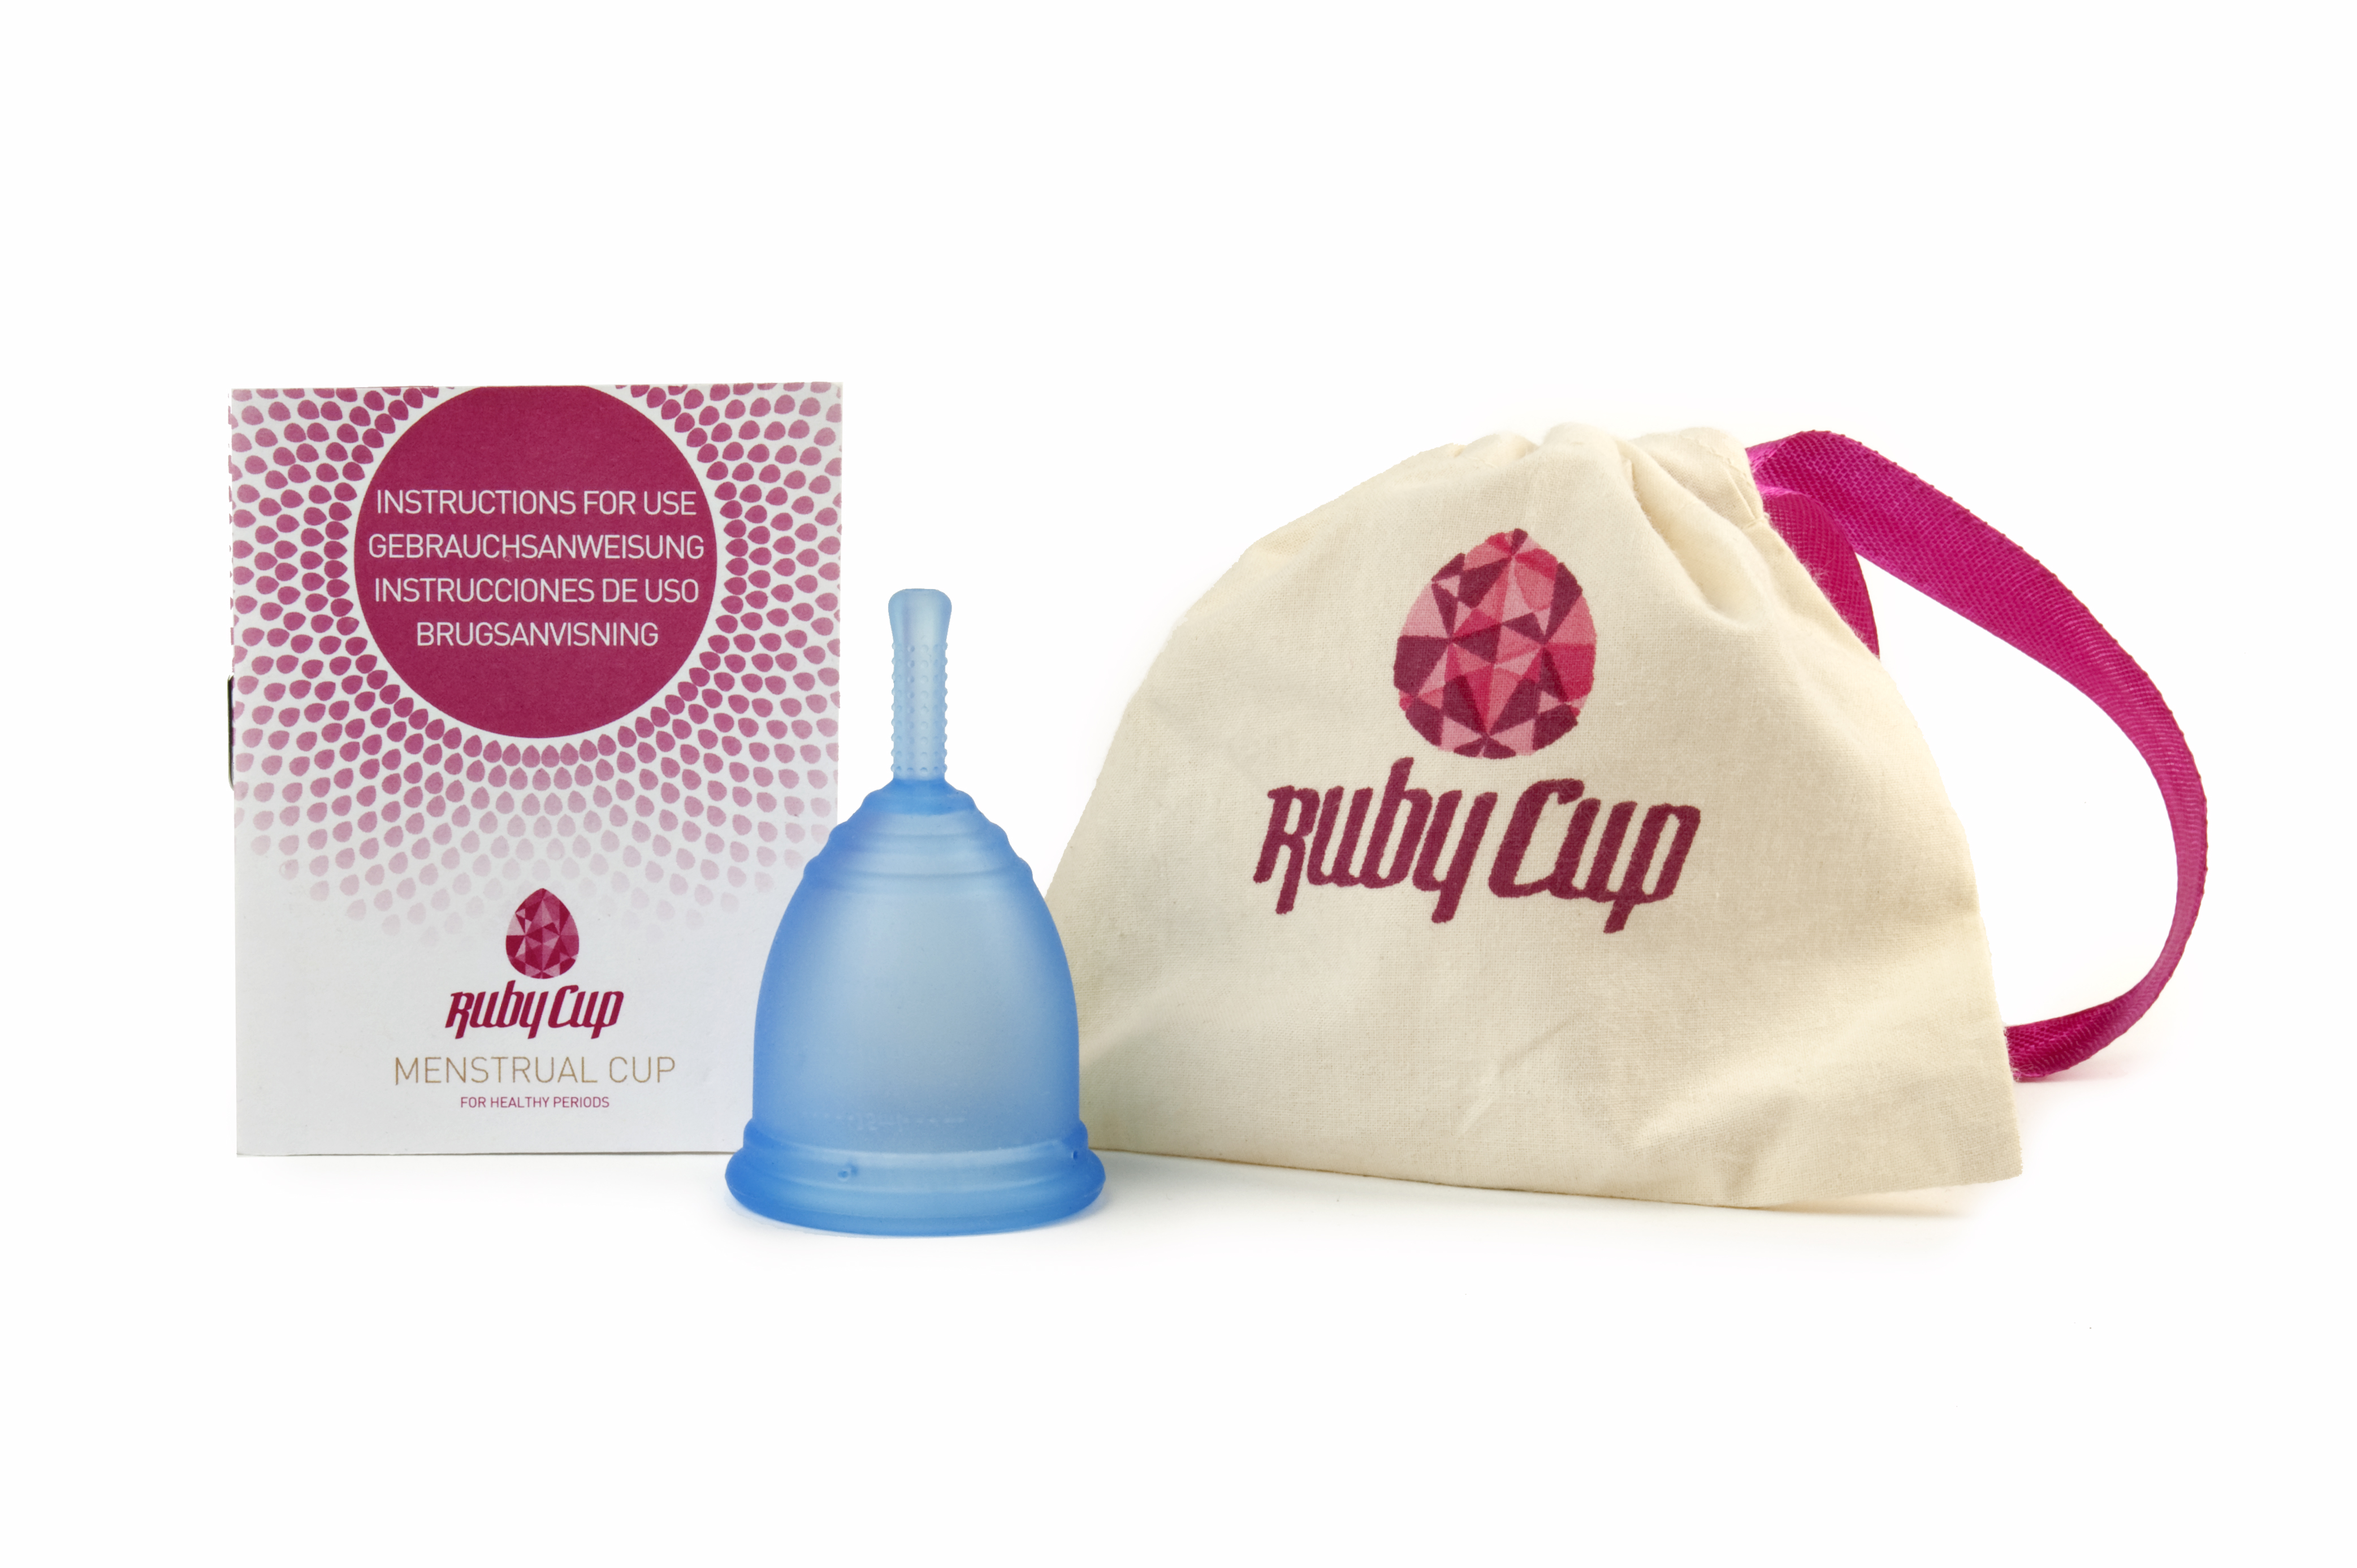 rubycup_blue_bag_ifu_2